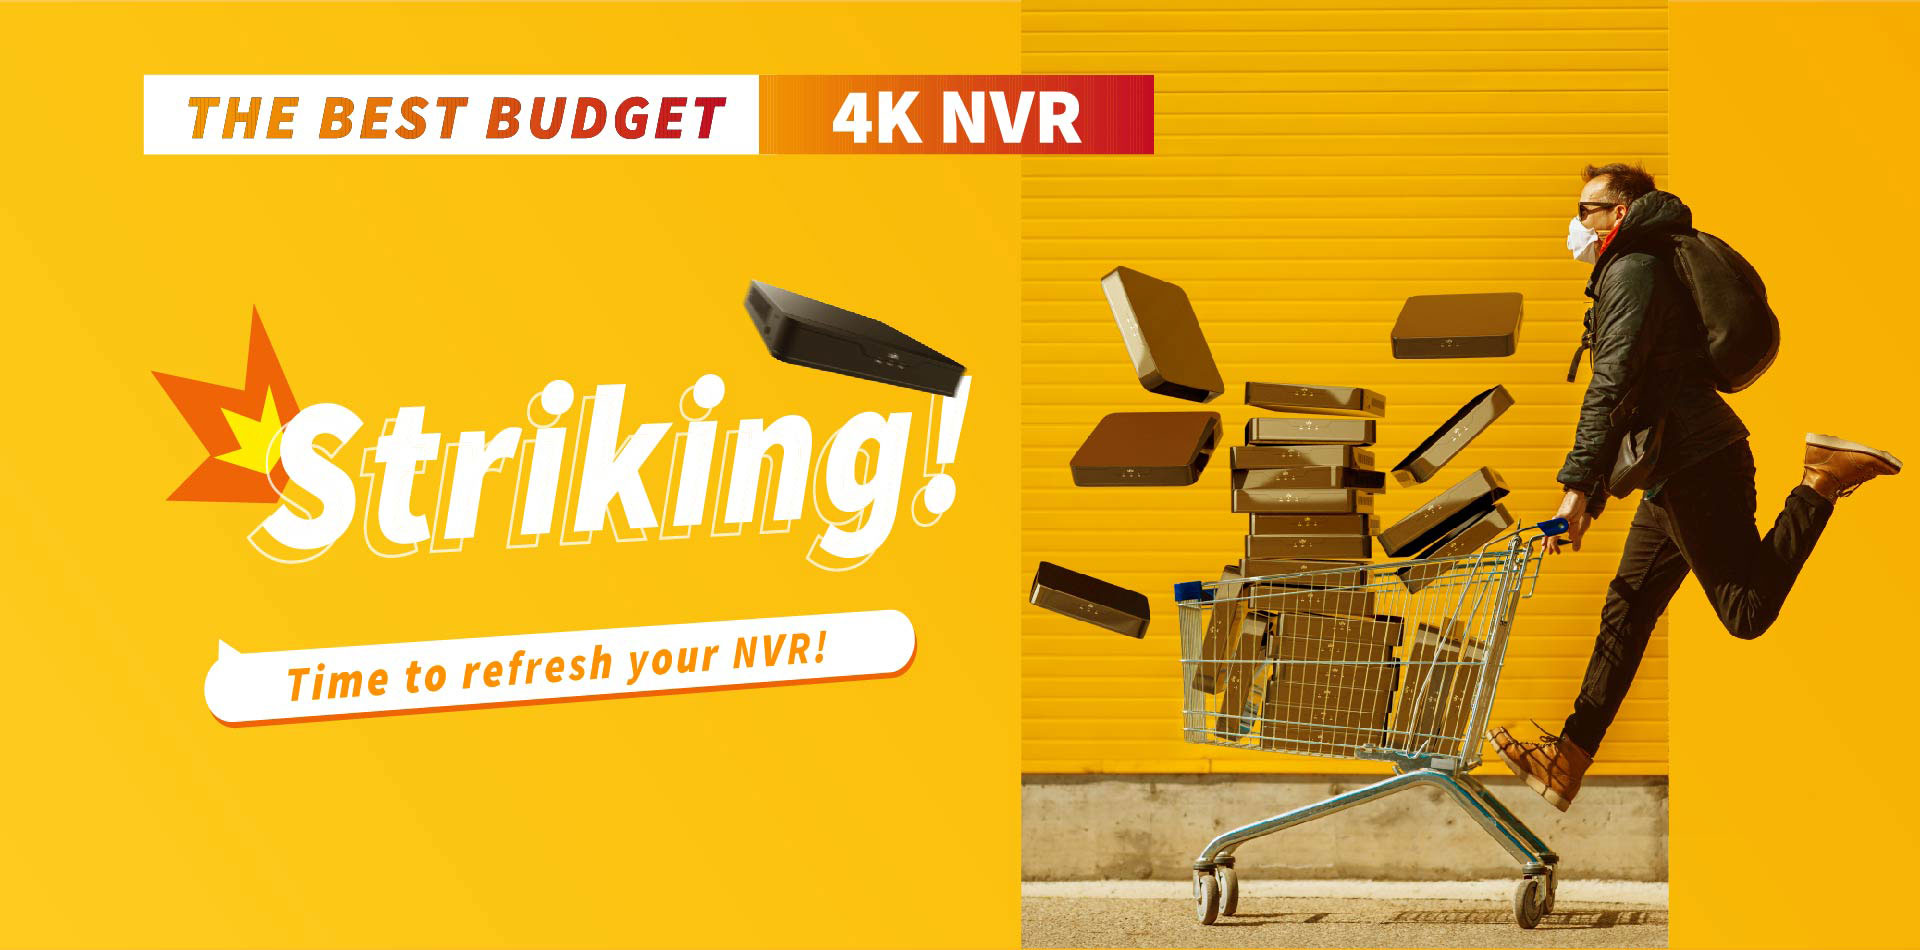 The Best Budget: 4K NVR